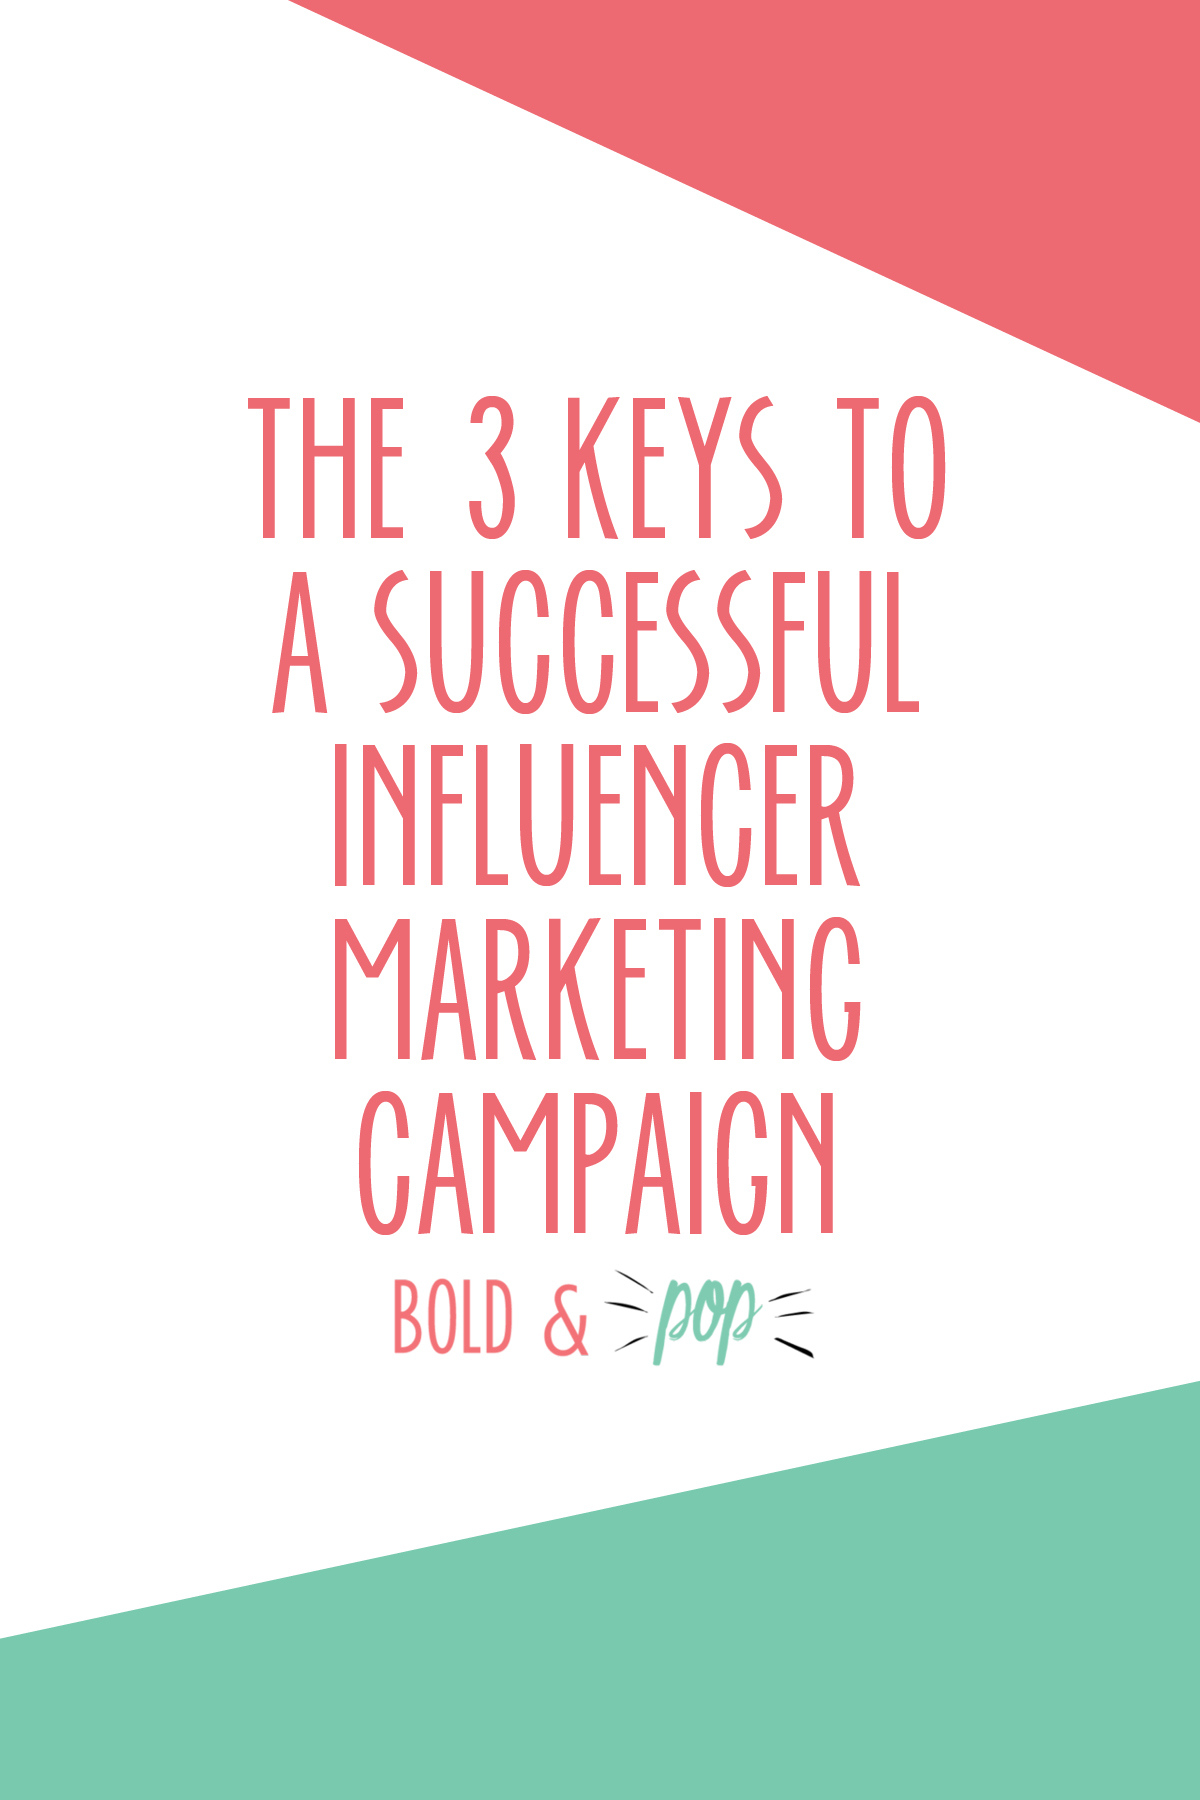 Bold & Pop : The 3 Keys to a Successful InfluencerMarketing Campaign